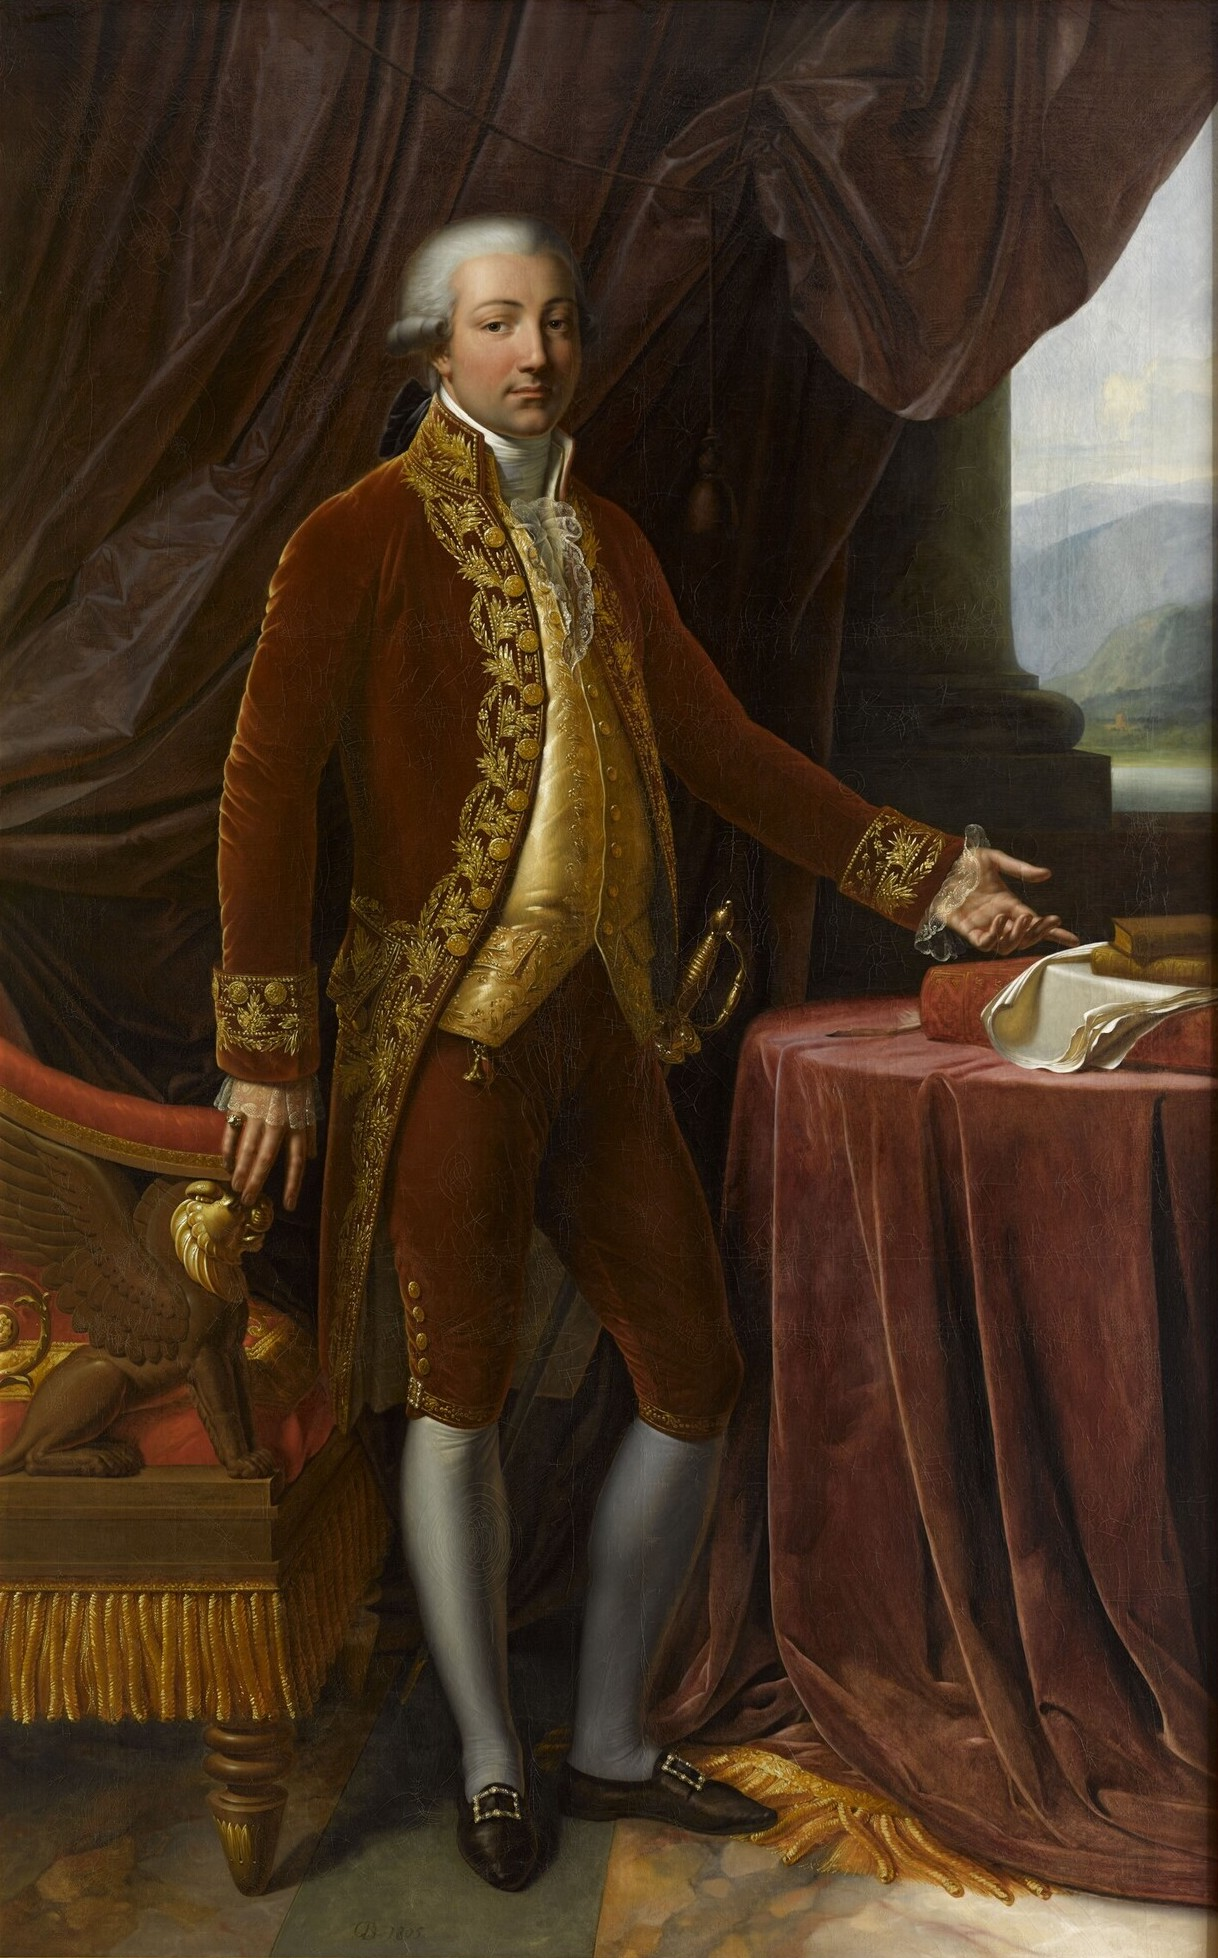 http://upload.wikimedia.org/wikipedia/commons/b/bd/Carlo_Maria_Bonaparte.jpg